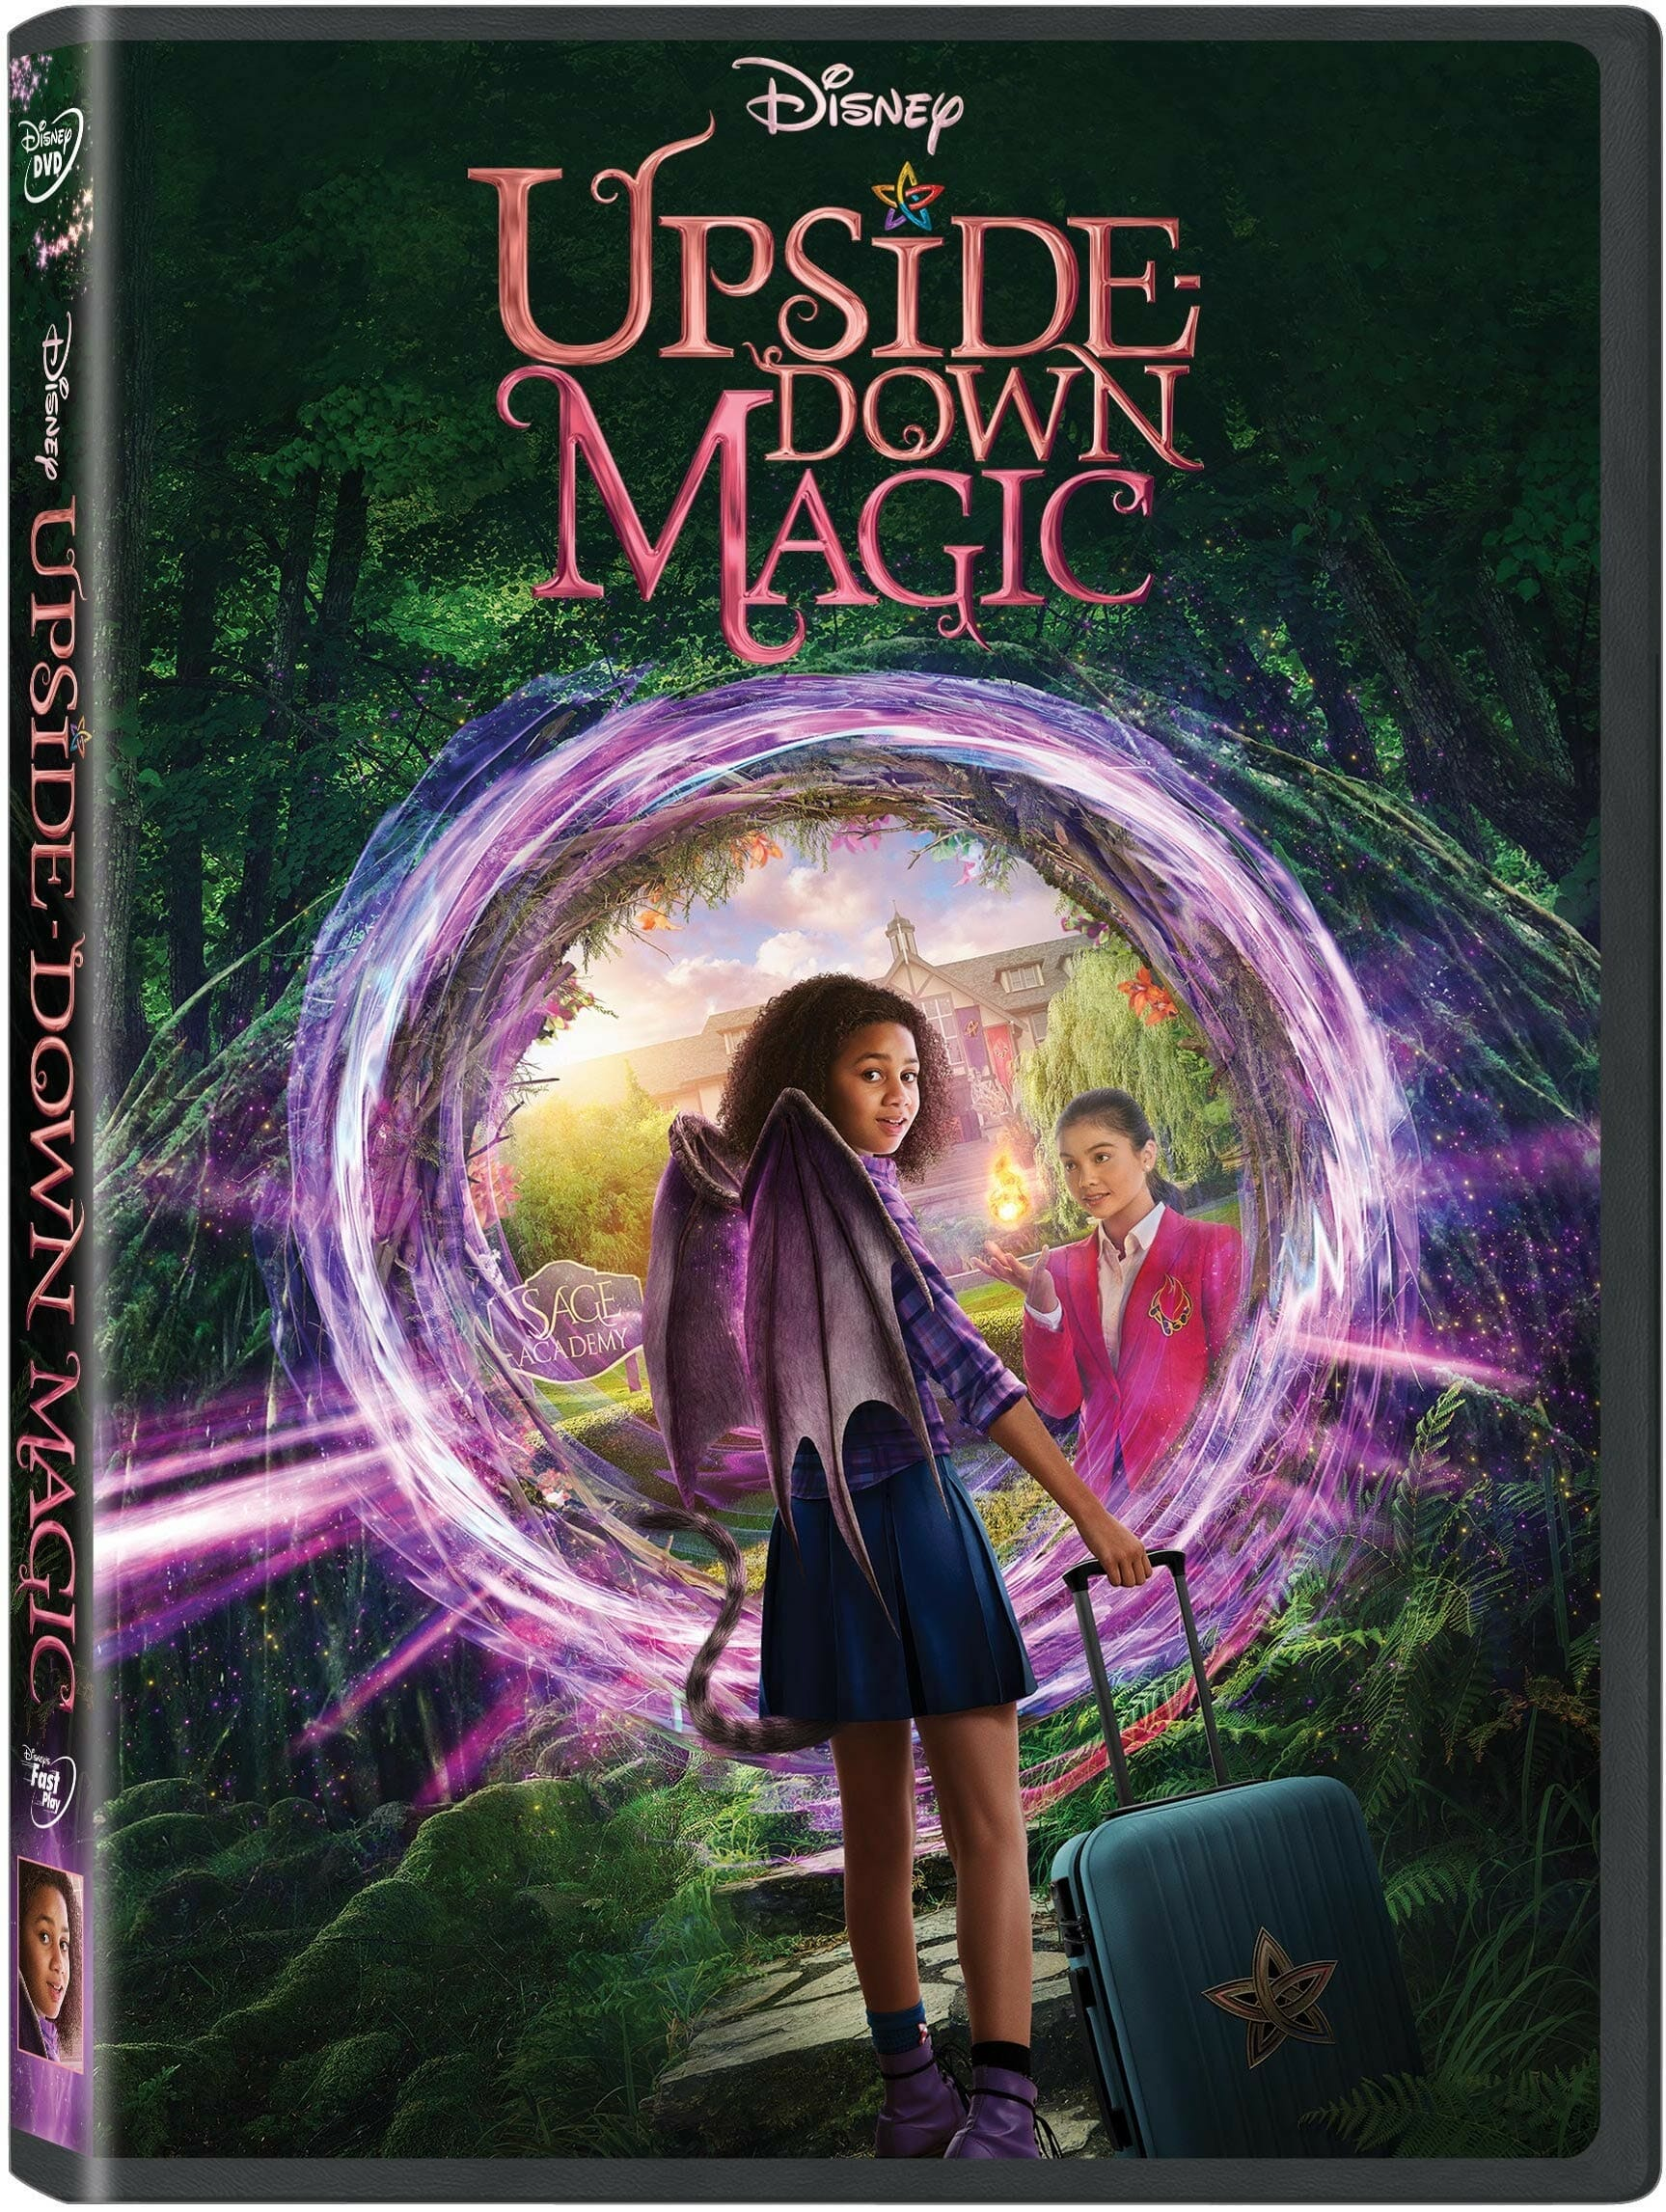 Disney S Upside Down Magic Now Available On Dvd Disney Plus Informer